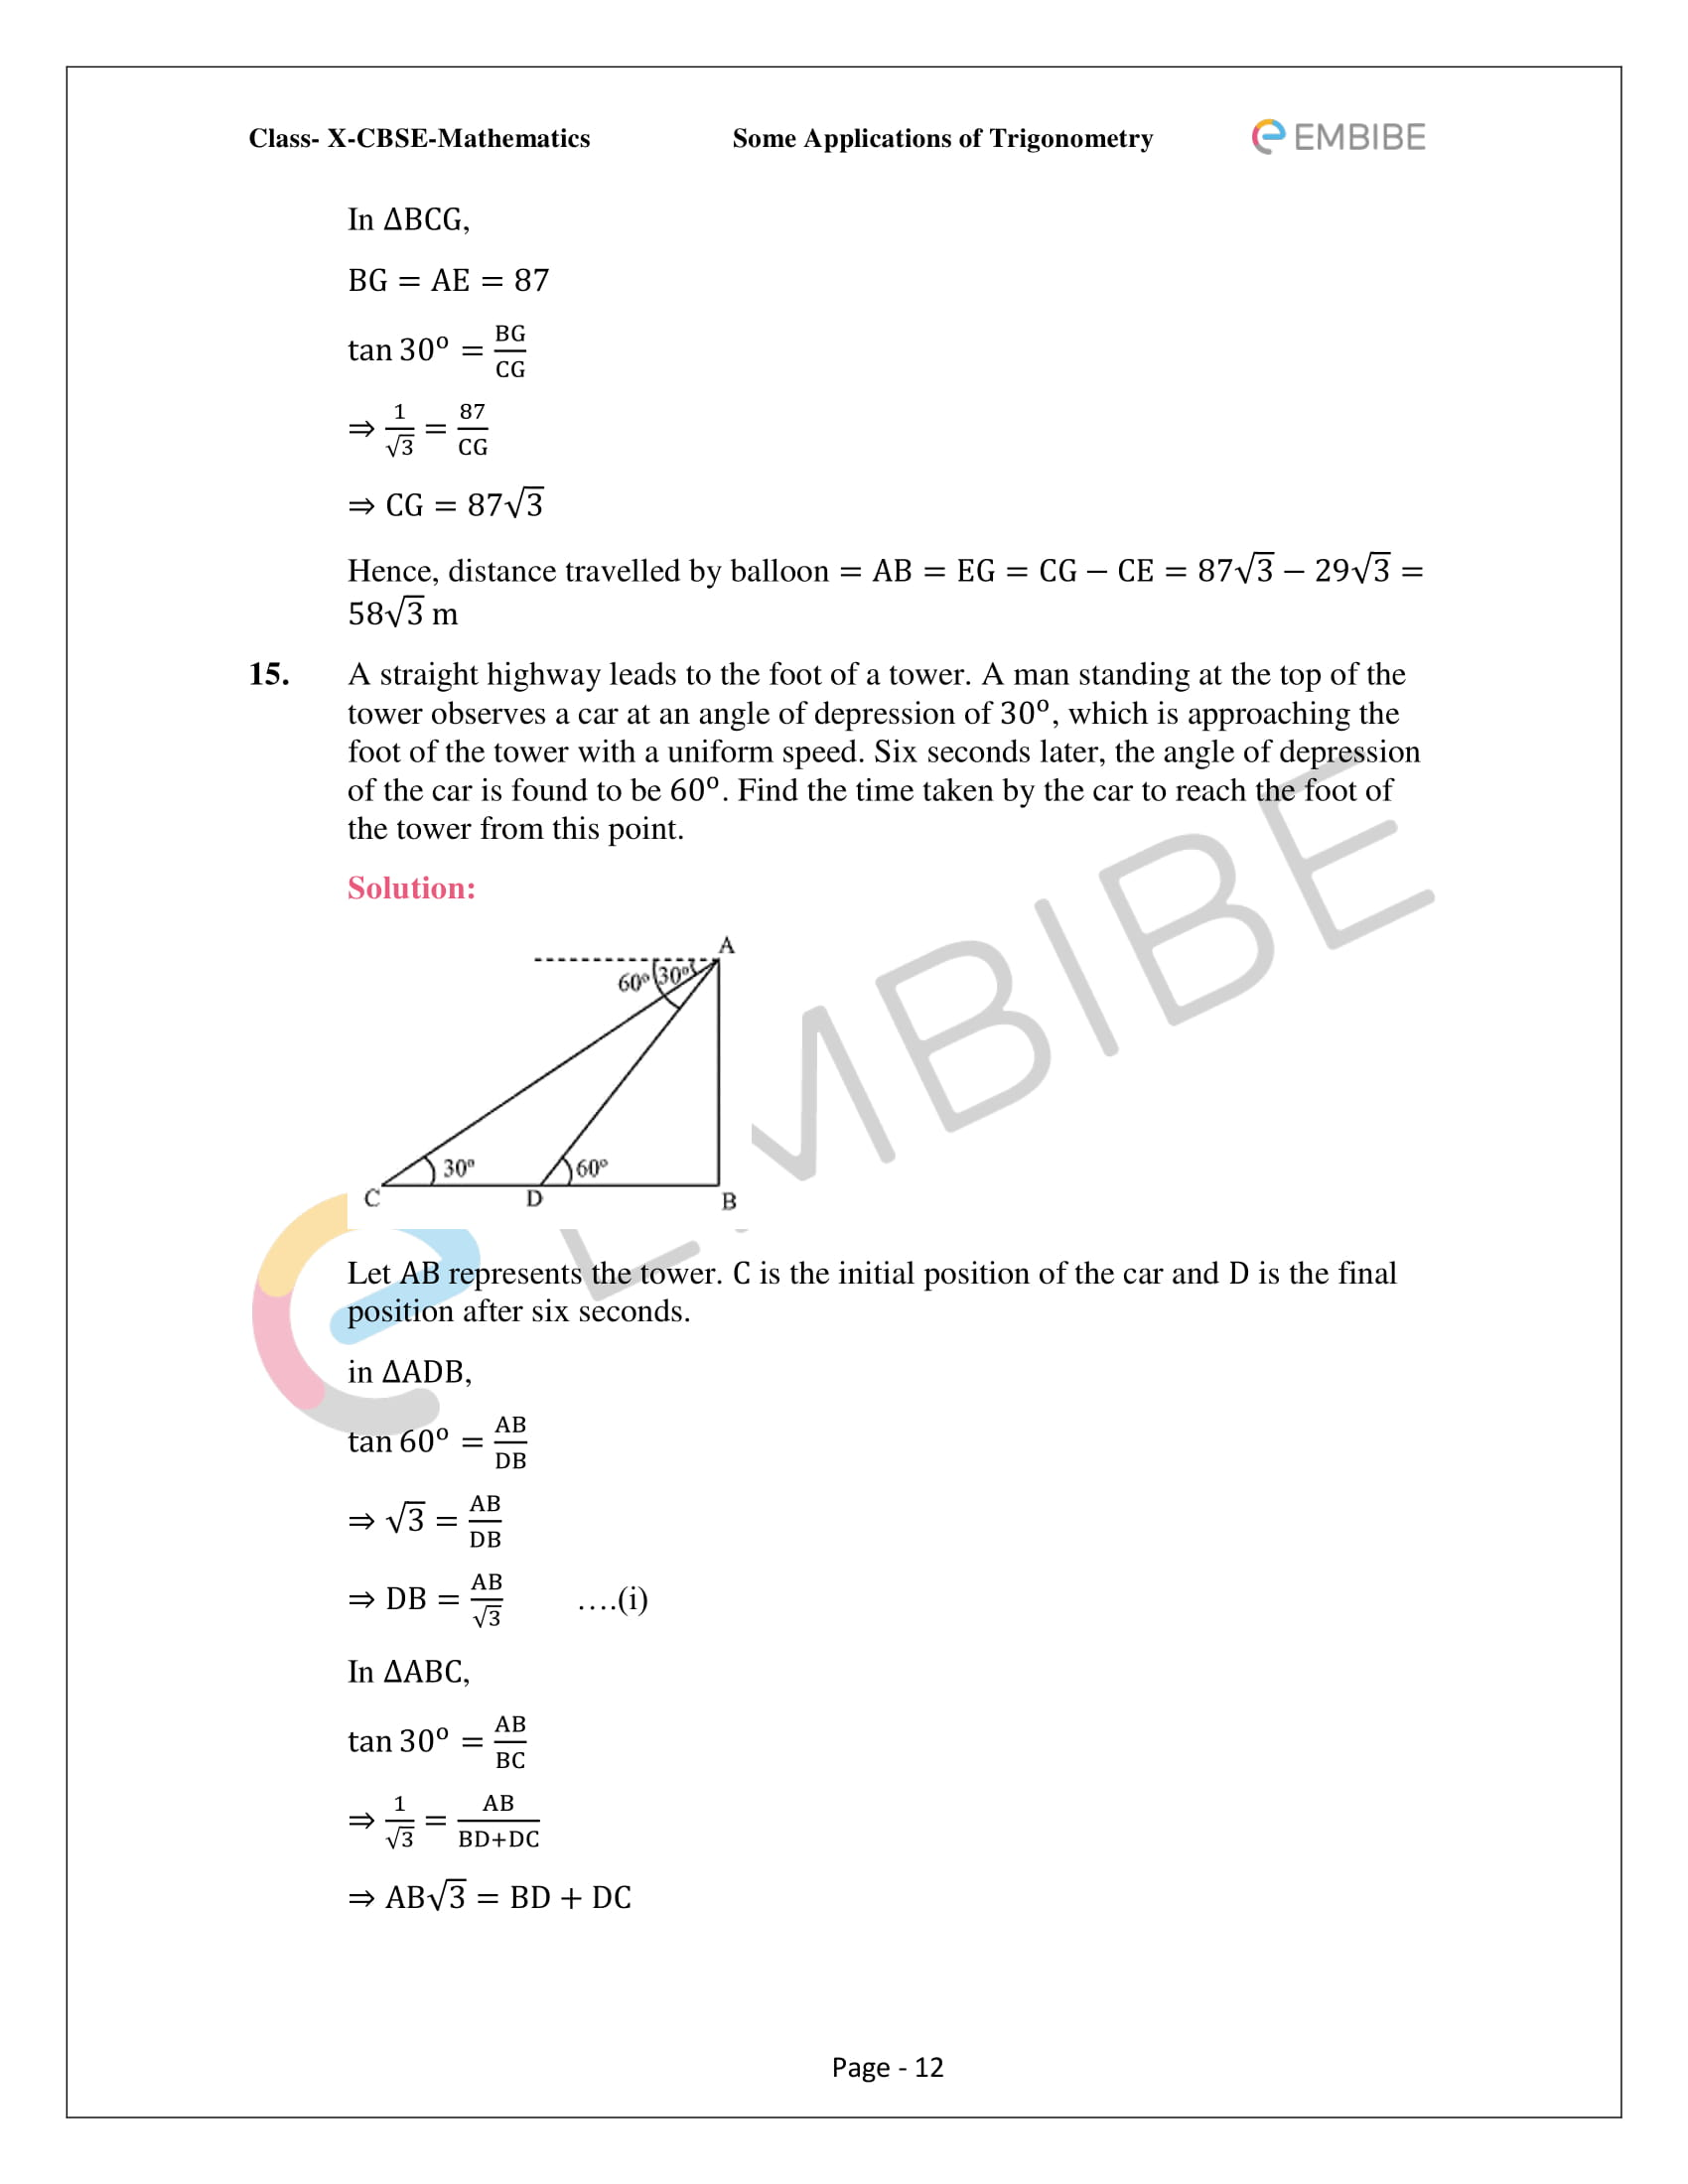 CBSE NCERT Solutions For Class 10 Maths Chapter 9 –Introduction To Trigonometry - 12